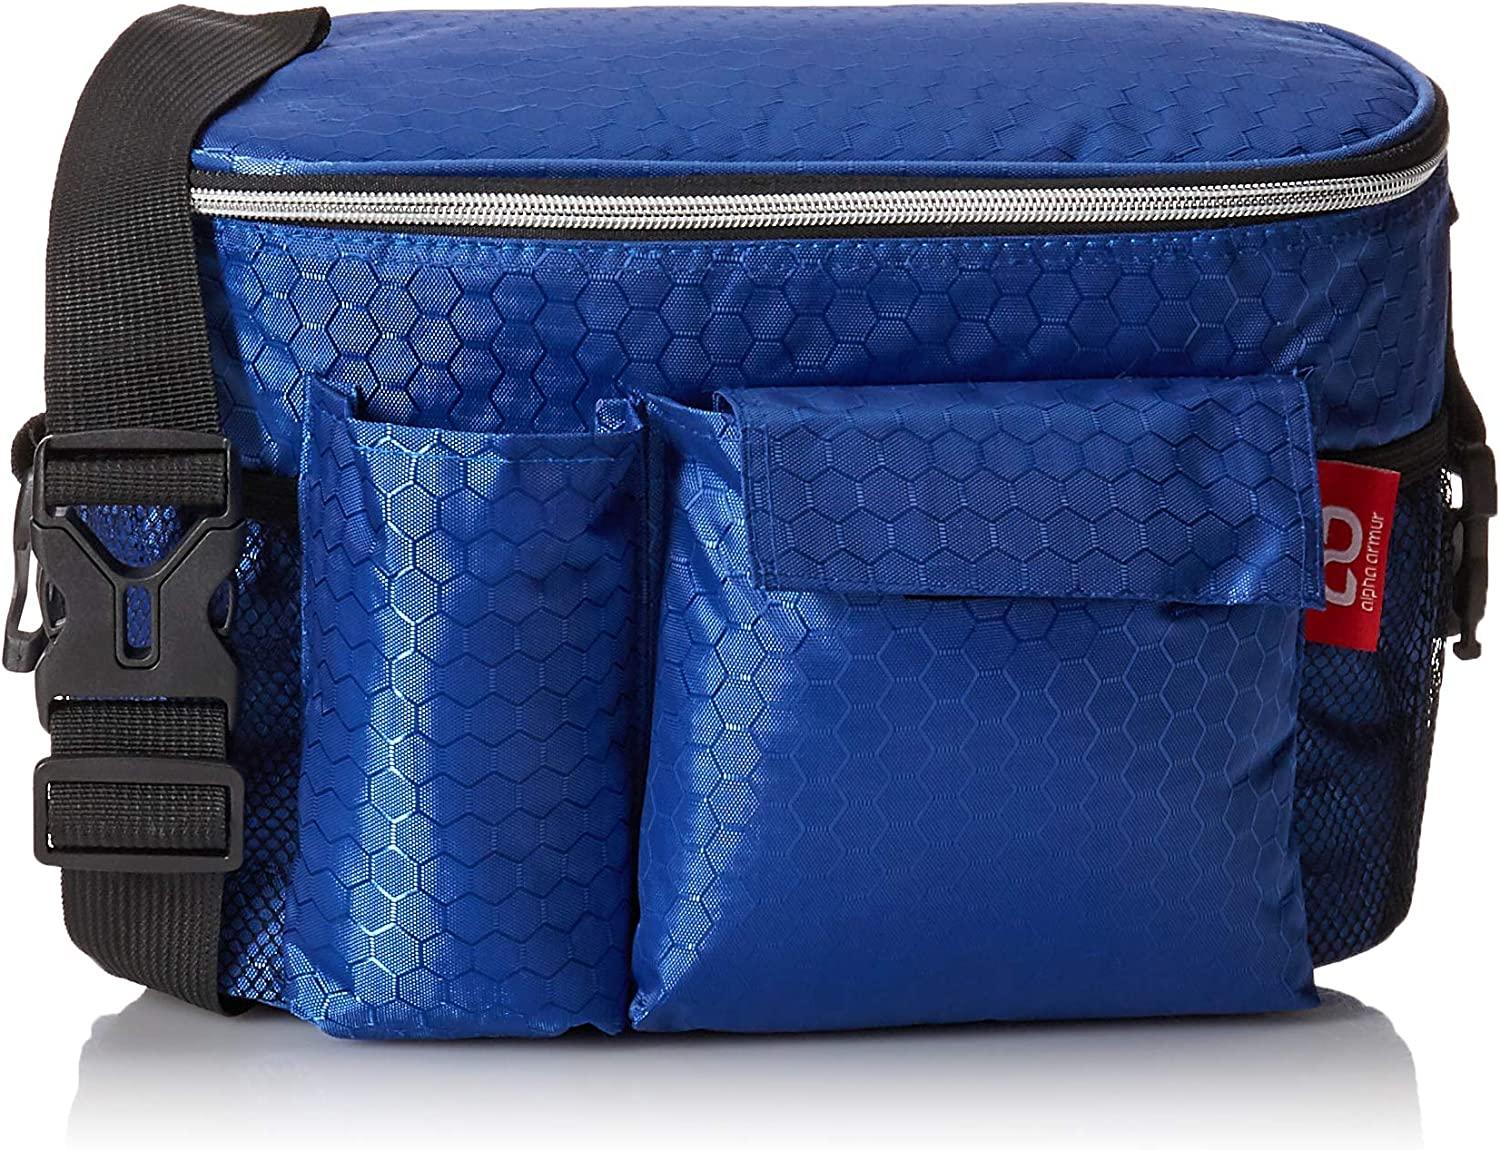 Alpha Armur Shoulder Lunch Bag 12 Cans Camping Outdoor Insulated, Blue